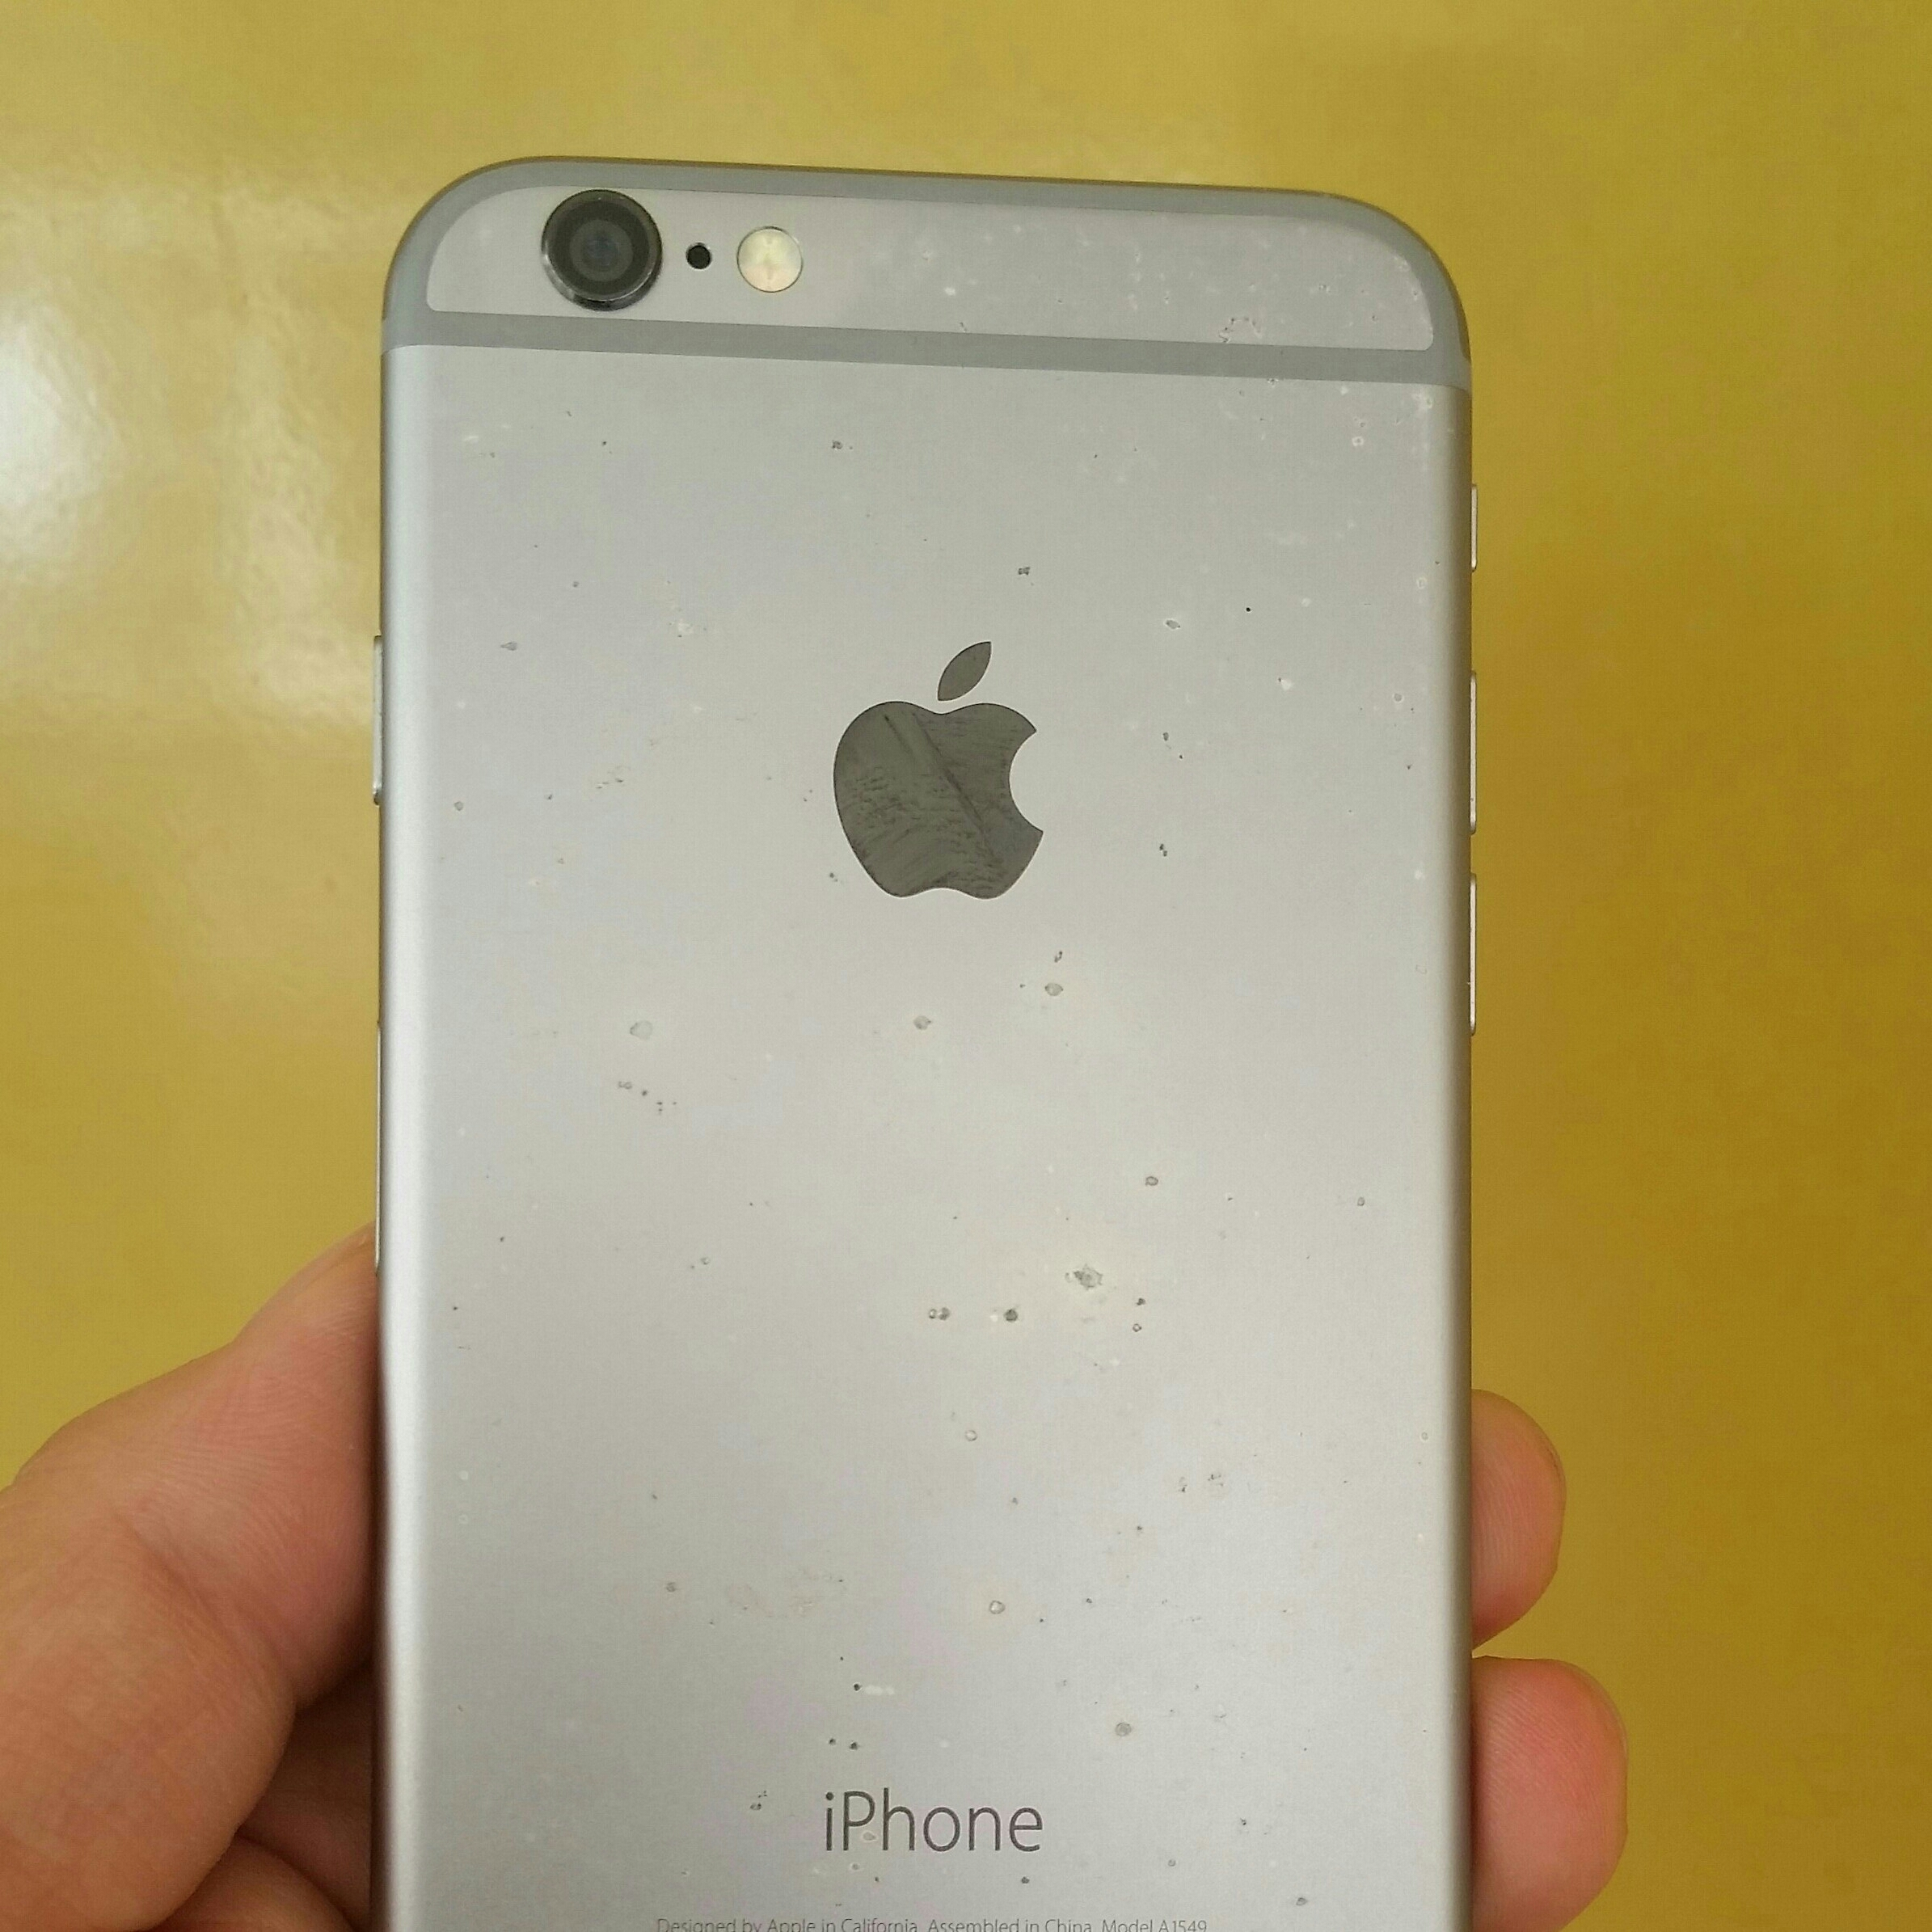 Apple ID Lock IPhone 6 Memory 64 GB  Parts Use, if U Have Ideas Open Lock, Mobile is Working.